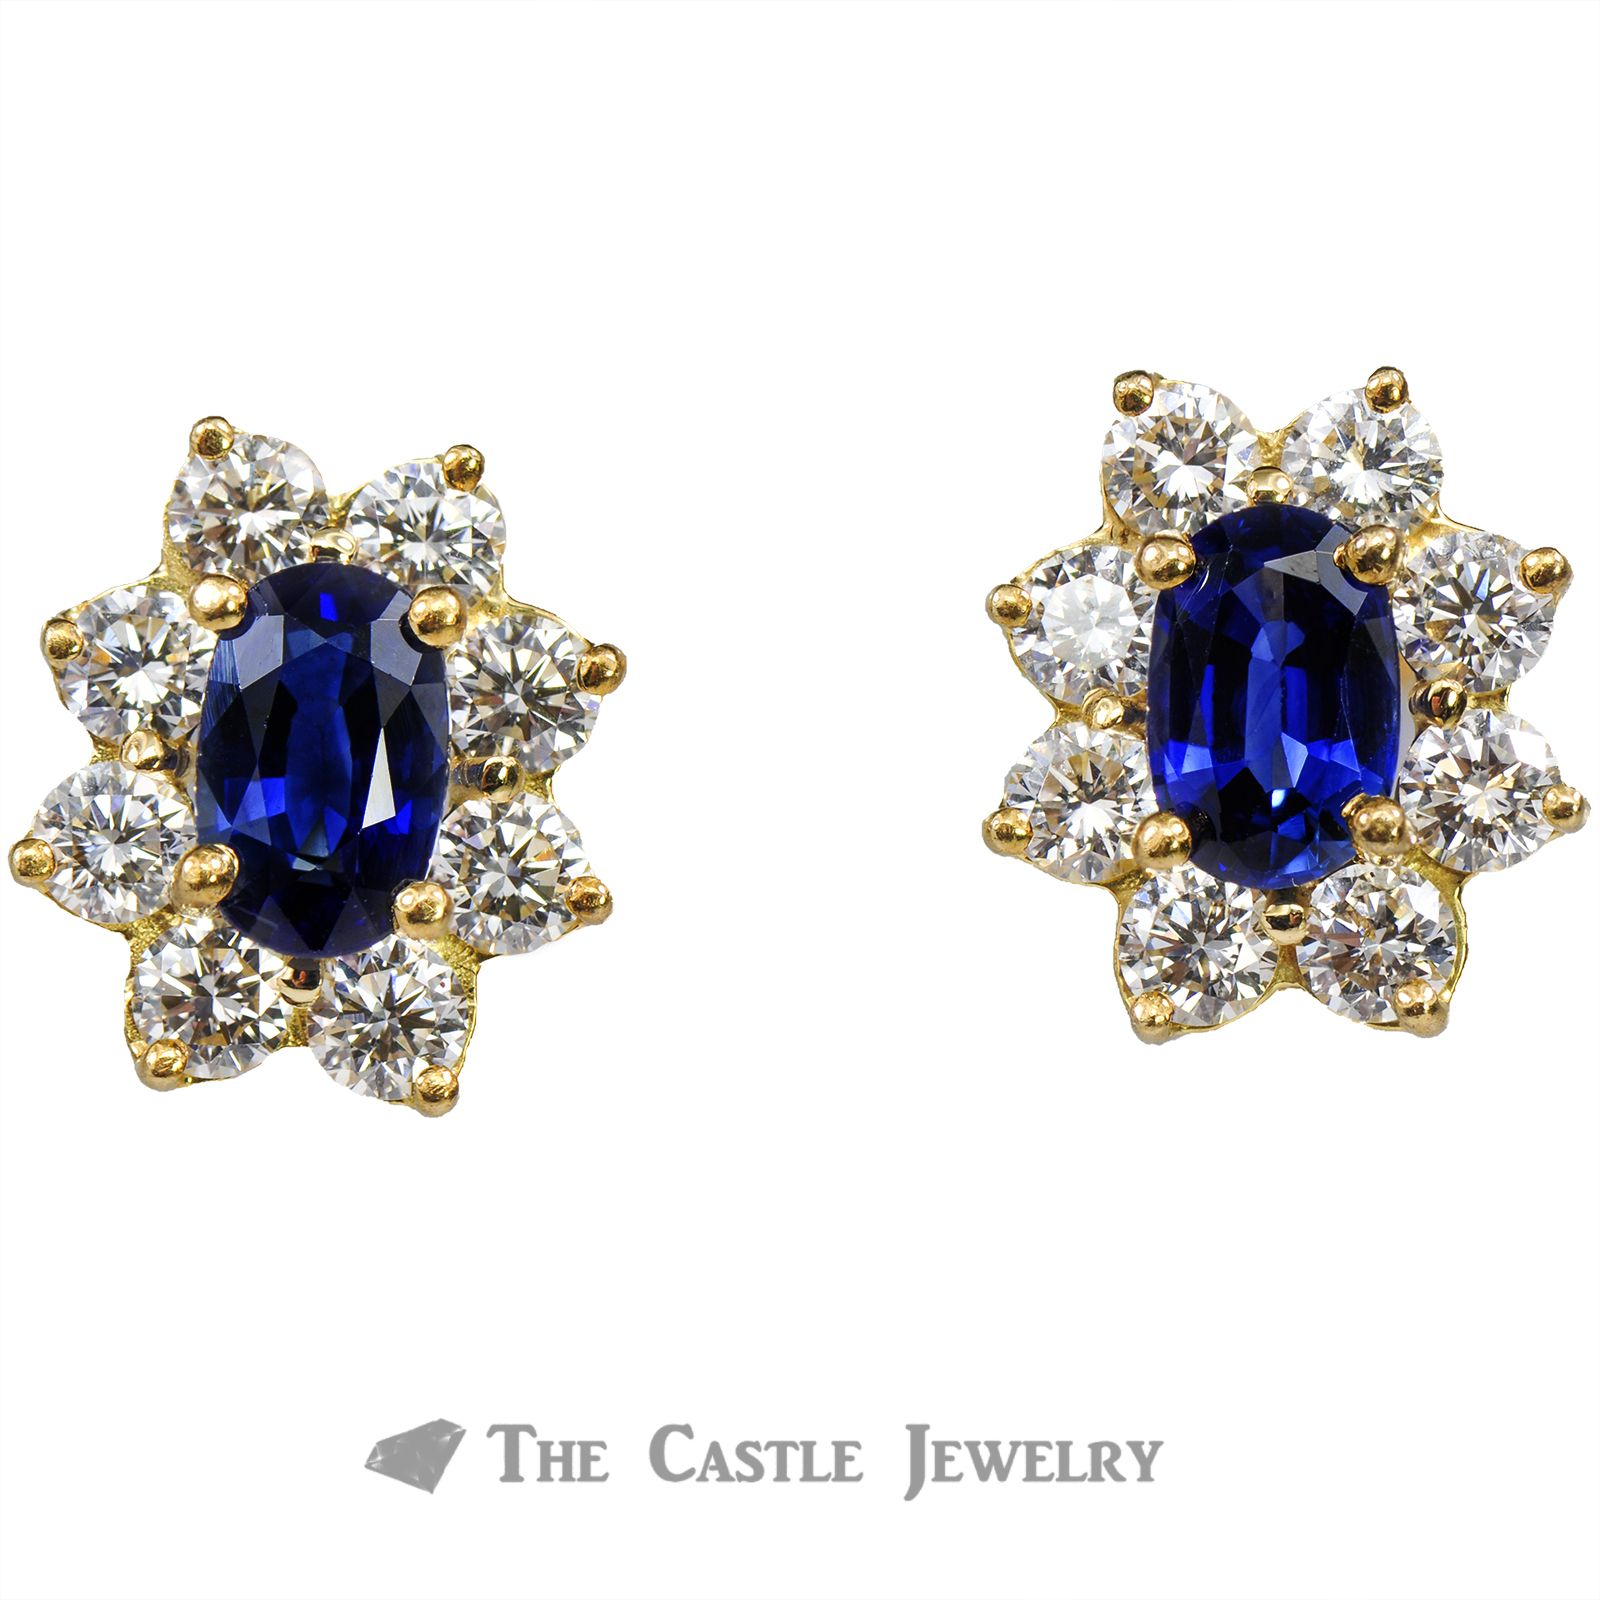 Oval Sapphire Screw On Earrings with Diamond Halo 14K Gold